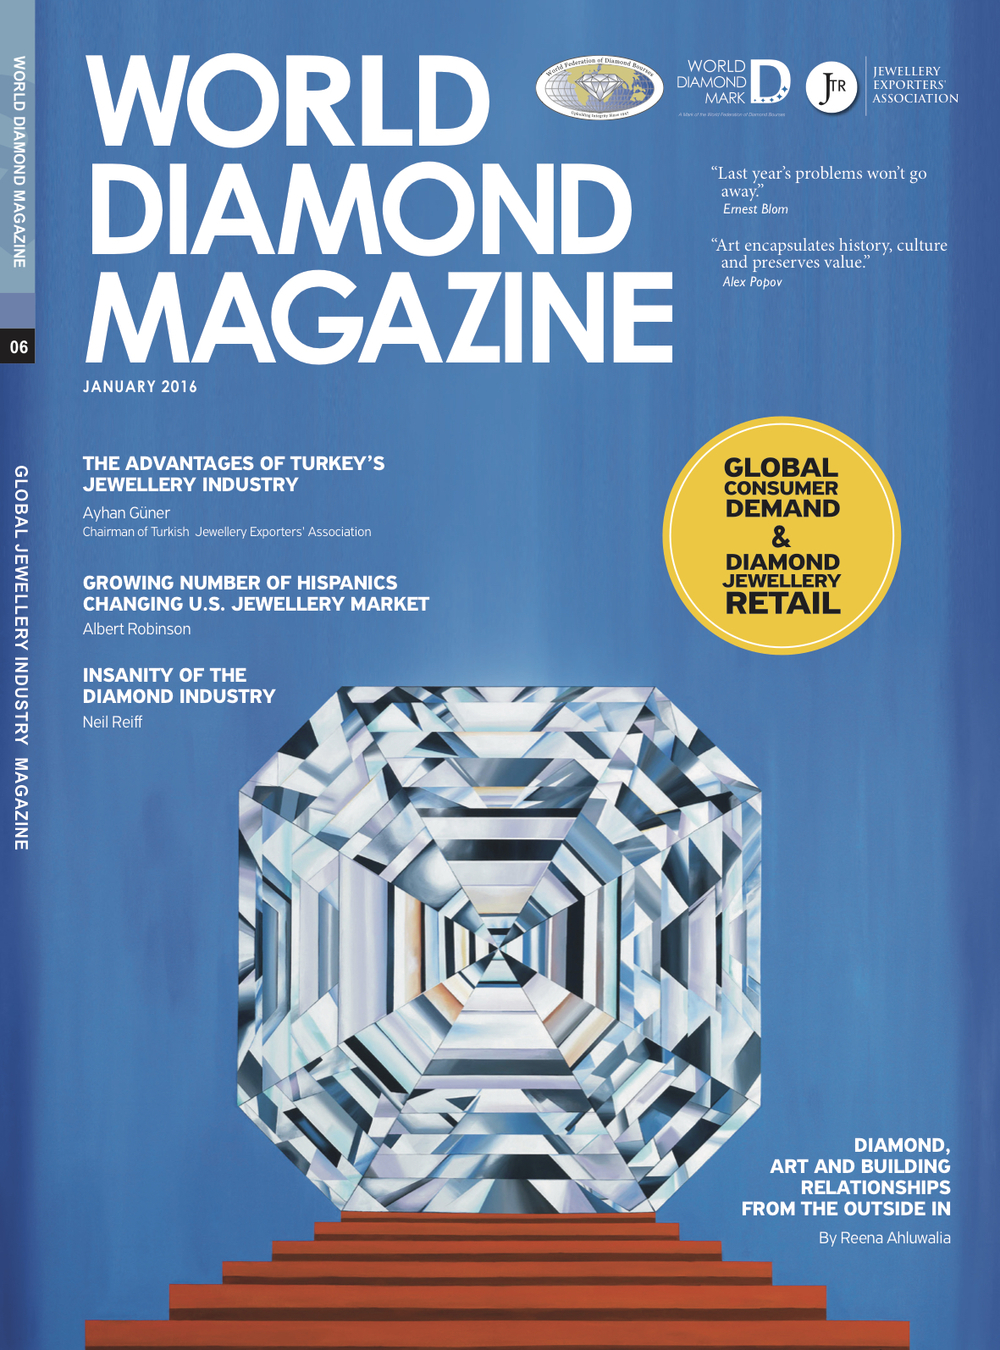 World Diamond Magazine_Reena Ahluwalia_Ya'akov Almor